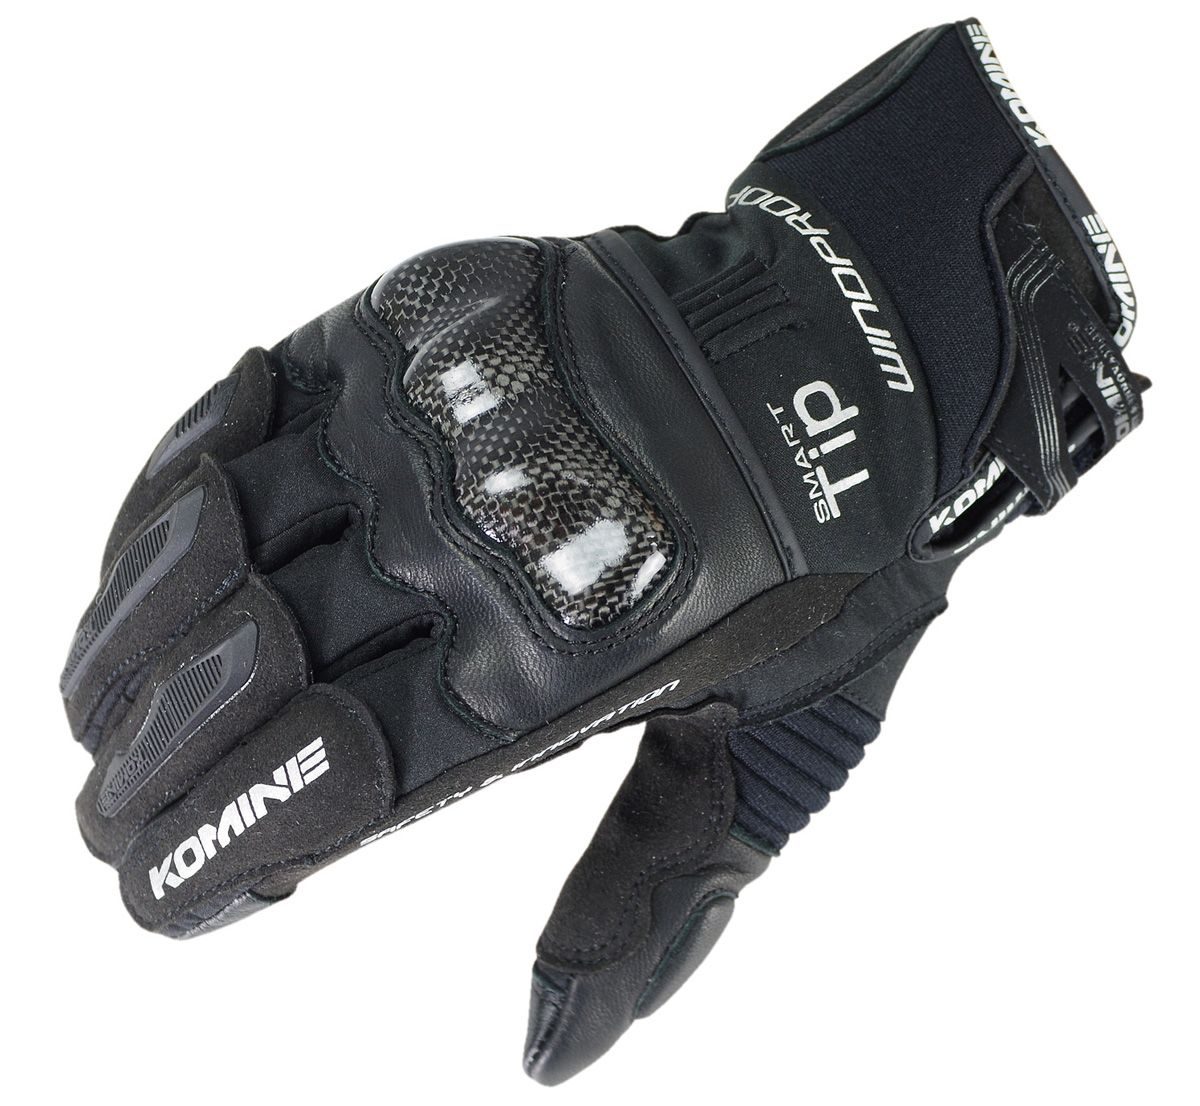 KOMINE GK-821 Rękawica Carbon Protect Windproof